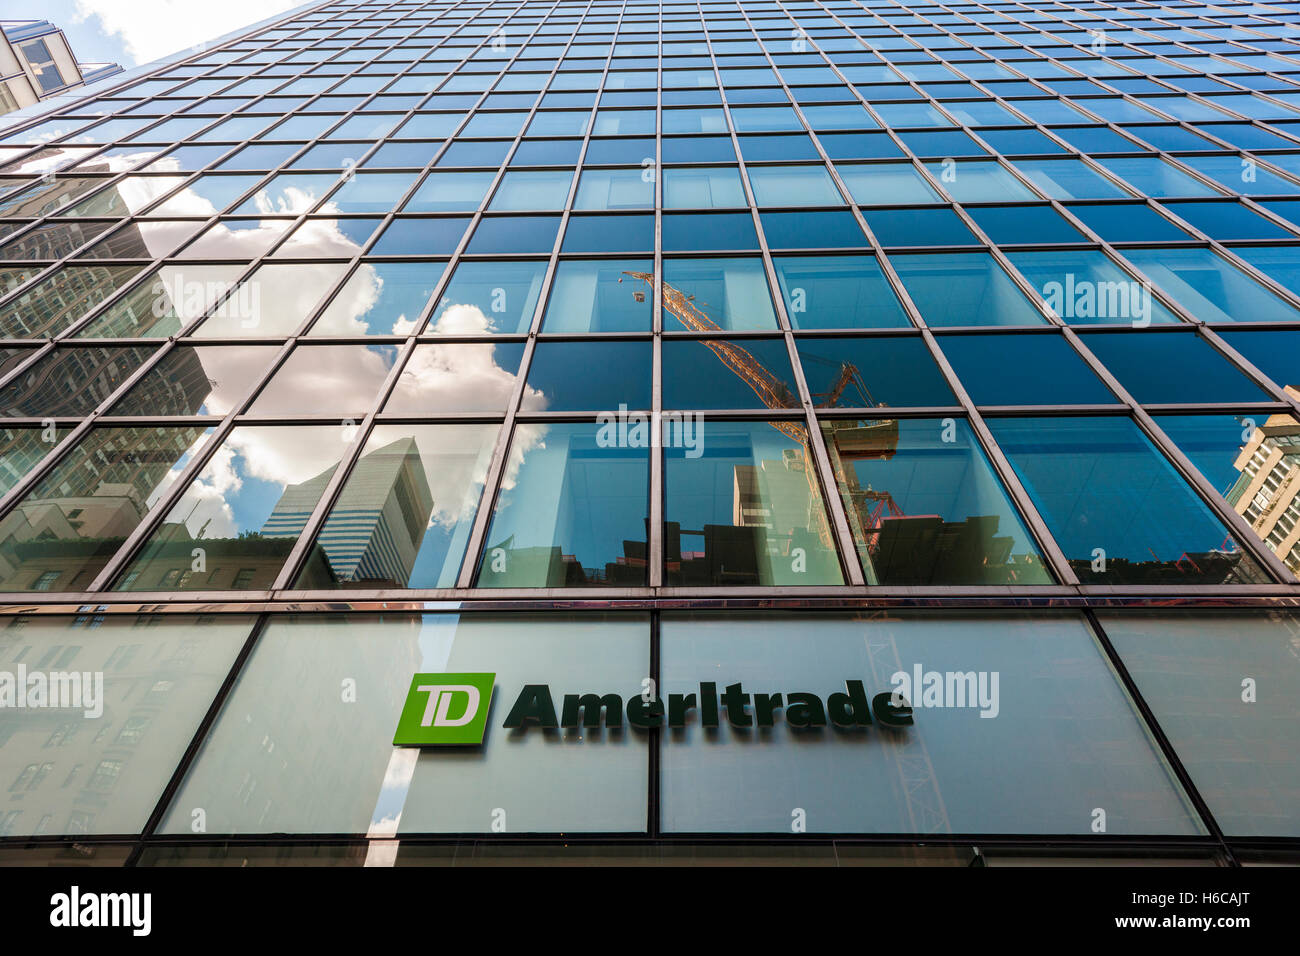 Td Ameritrade Stock Photos Images Alamy Wiring Instructions For Scottrade A Holding Corp Branch In New York On Monday October 24